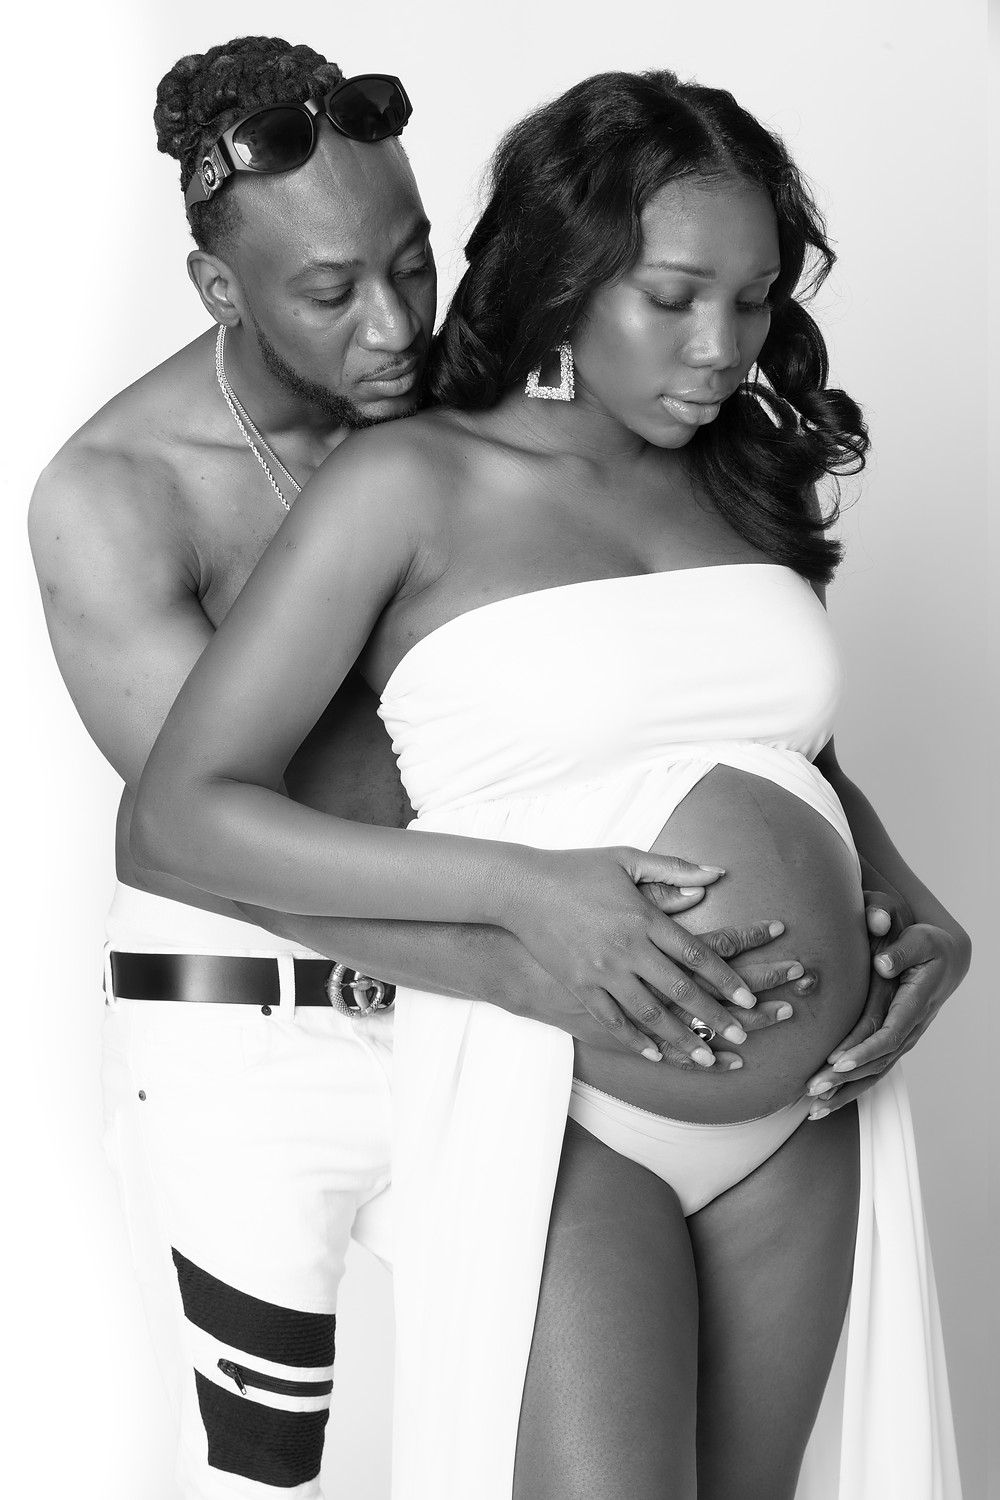 Maternity Photoshoots for the Whole Family www.talsstudio.com/maternity  (646) 300-2216 Celebrate this wonderful moment with a creative maternity shoot in our NYC studio. With our unique style and lighting abilities we are able to make your photos stand out from the rest. Book online today!  $249 2 Hour Session 15 Final Retouched Photos 100-120 Pictures Unlimited Poses Unlimited Outfit Changes High Resolution Perfect for Printing Online Gallery for Proofing Extra - Professional Hair and Makeup Artist* Full Usage Rights Photographer - Yoni Levy / Tals Studio